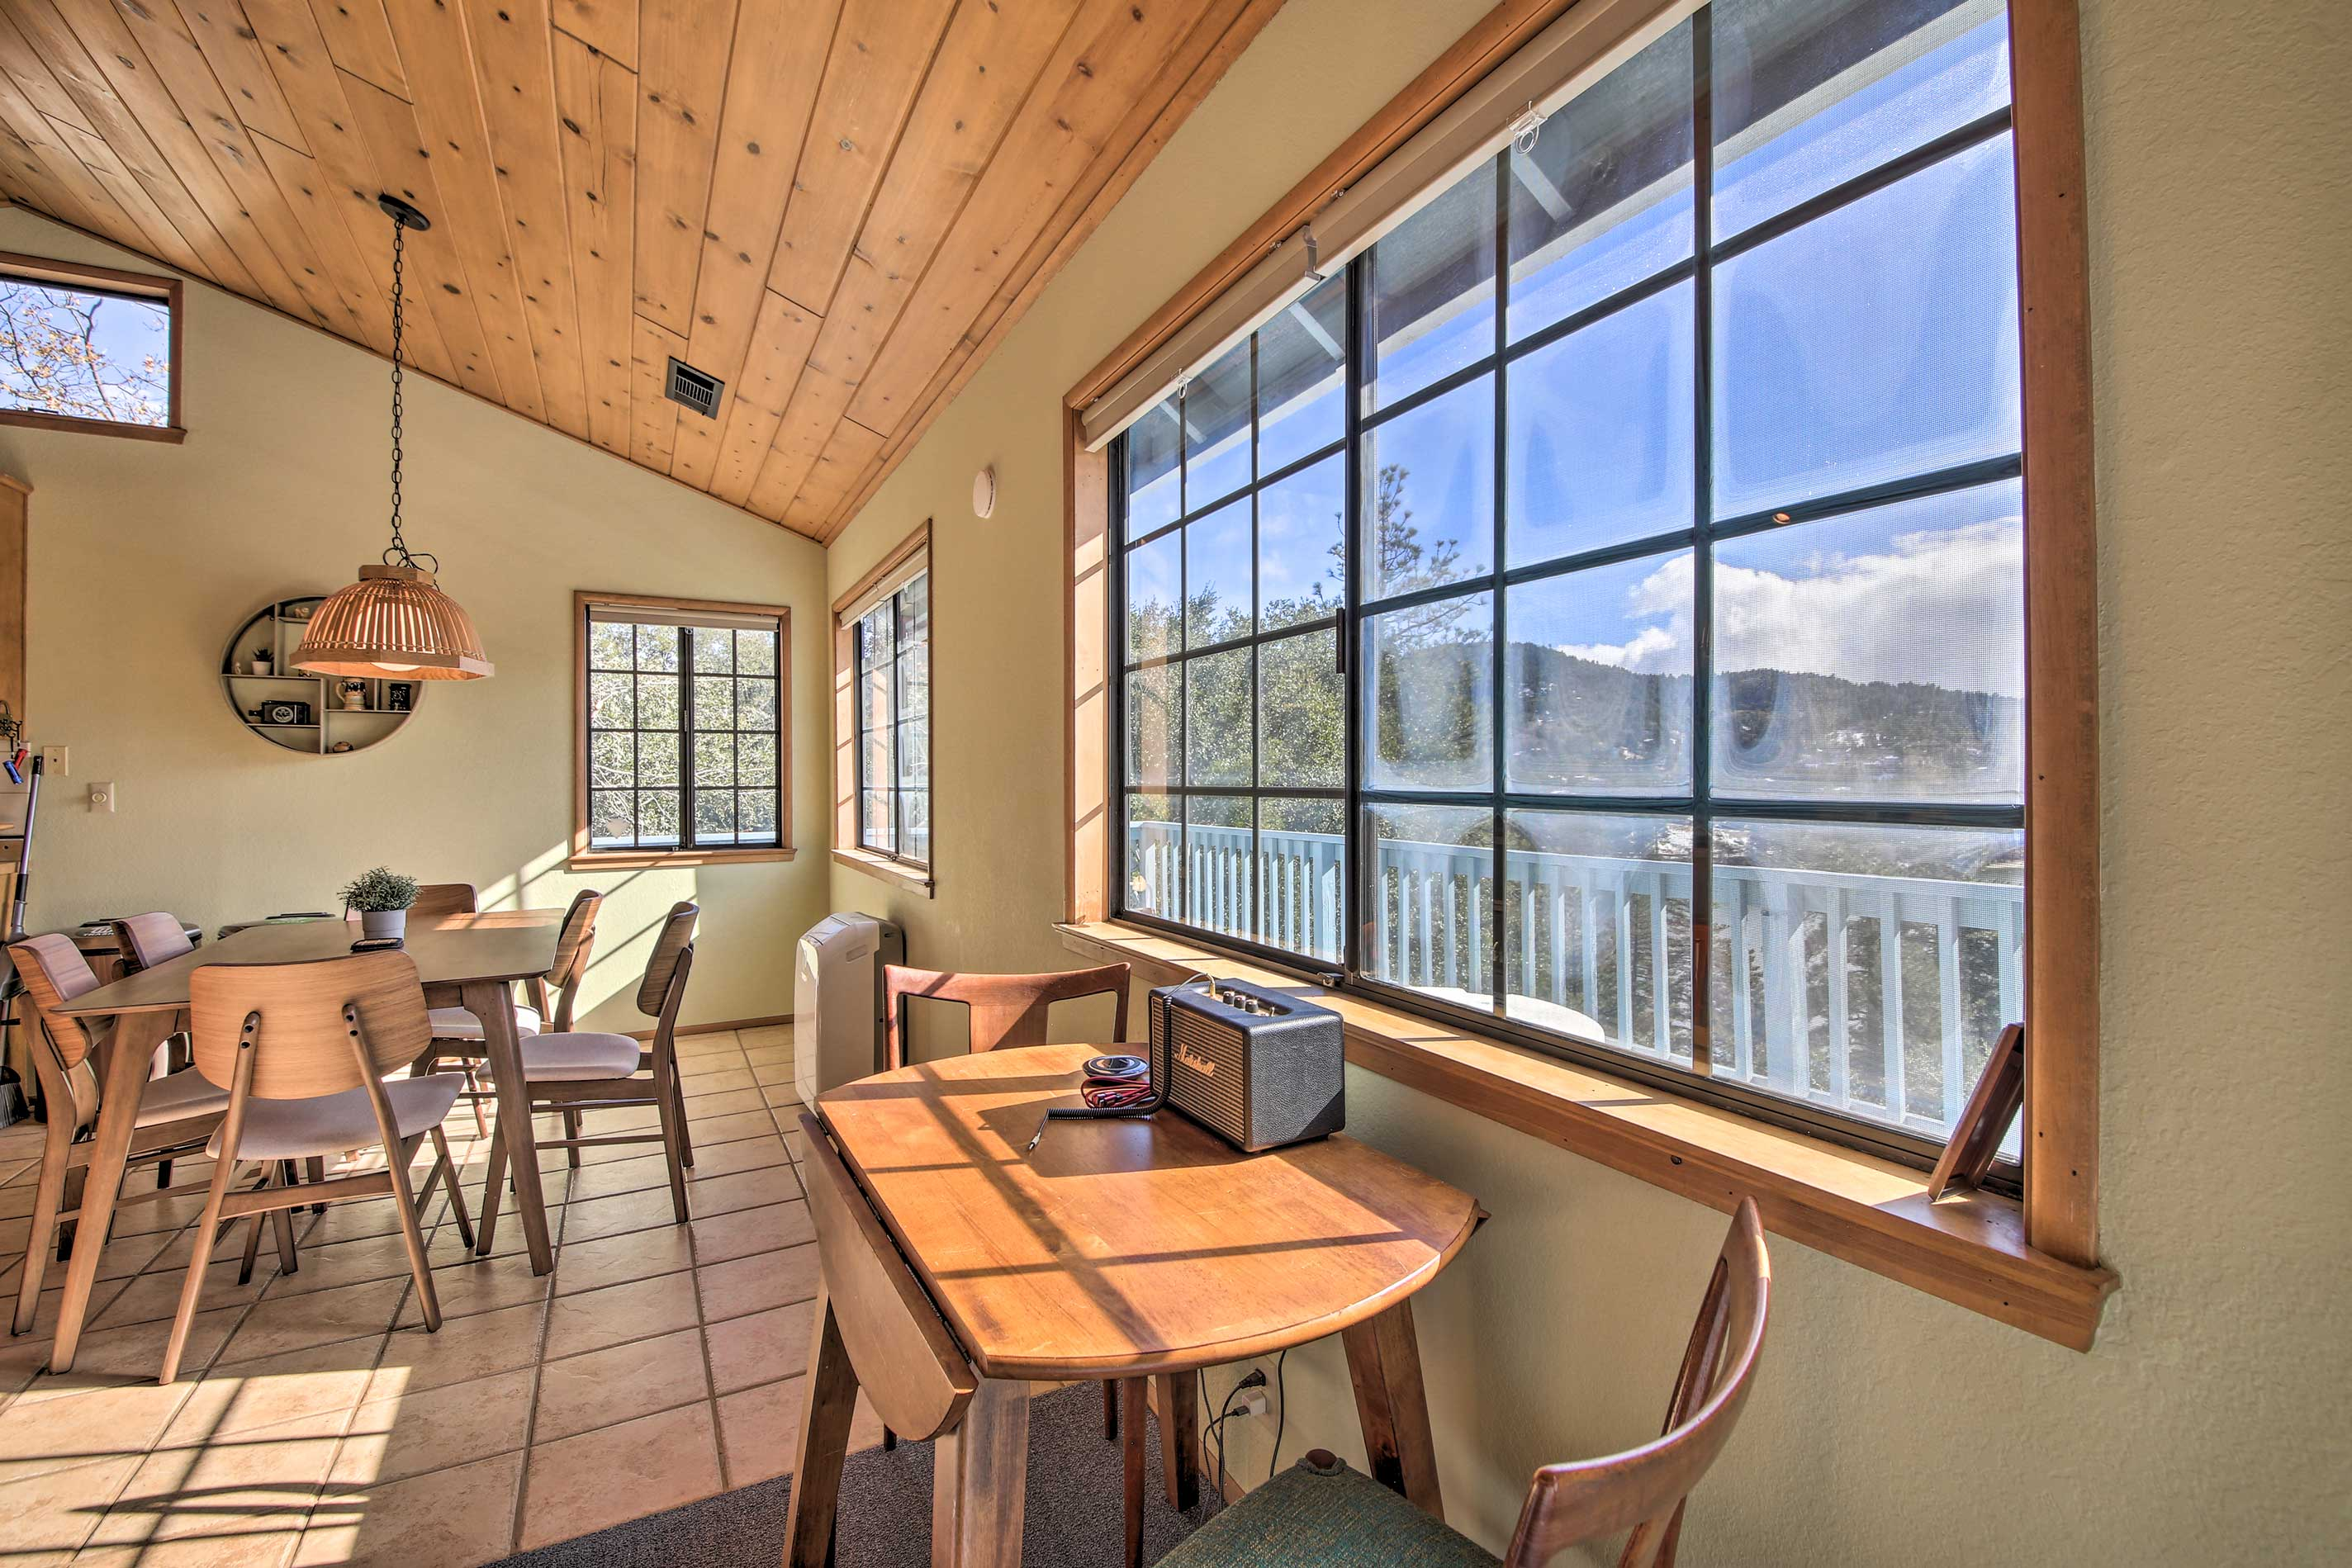 Feel the natural lighting from all angles of the cabin.